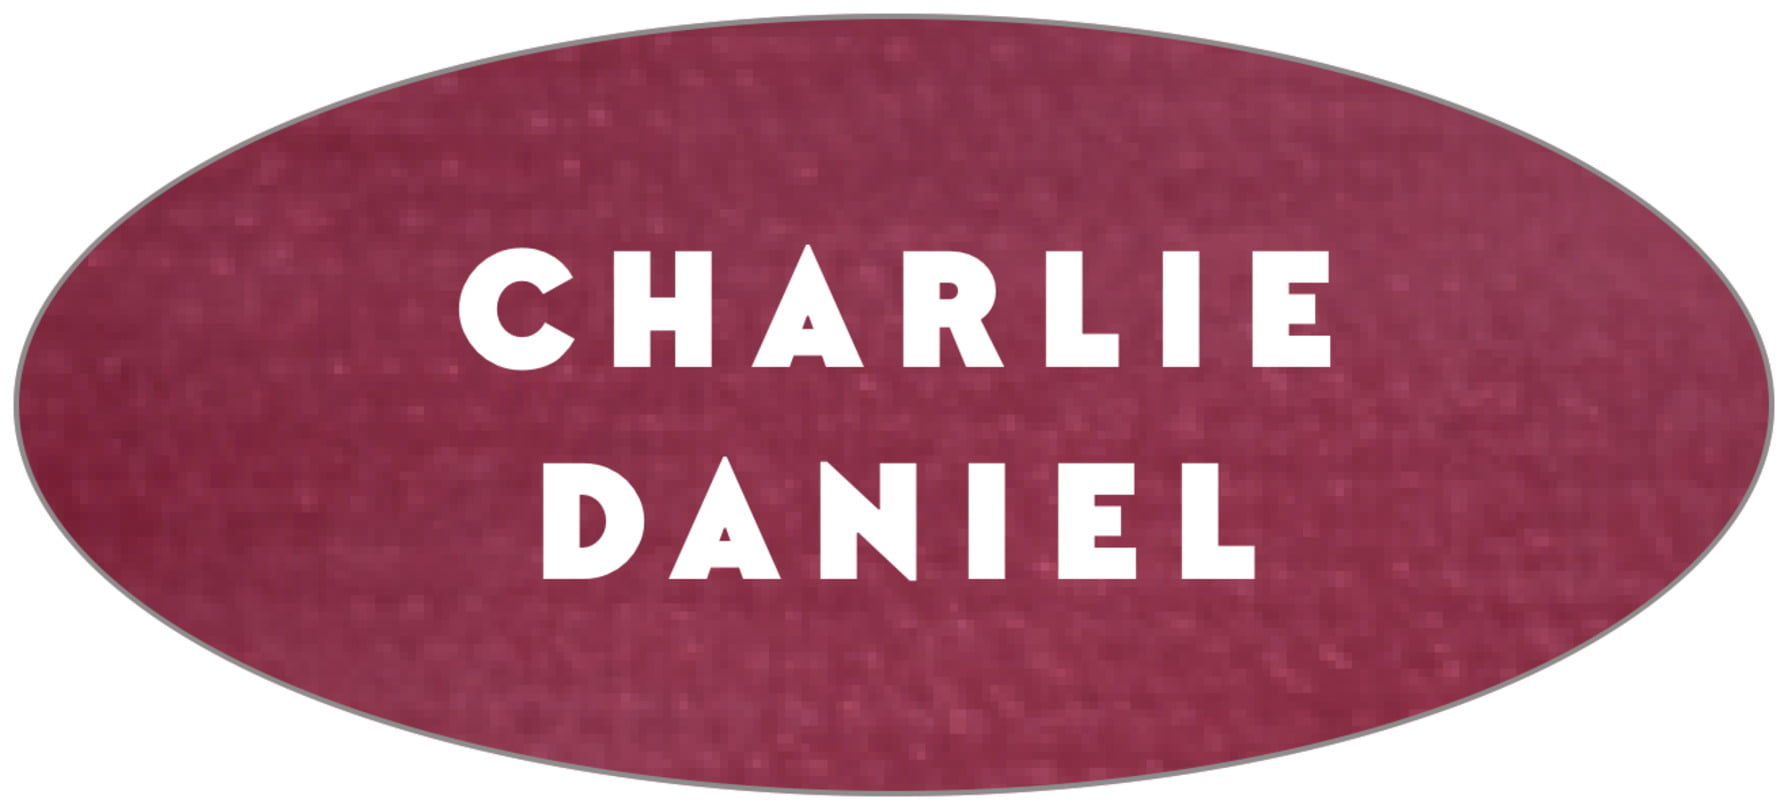 oval food/craft labels - burgundy - chevron edge (set of 30)